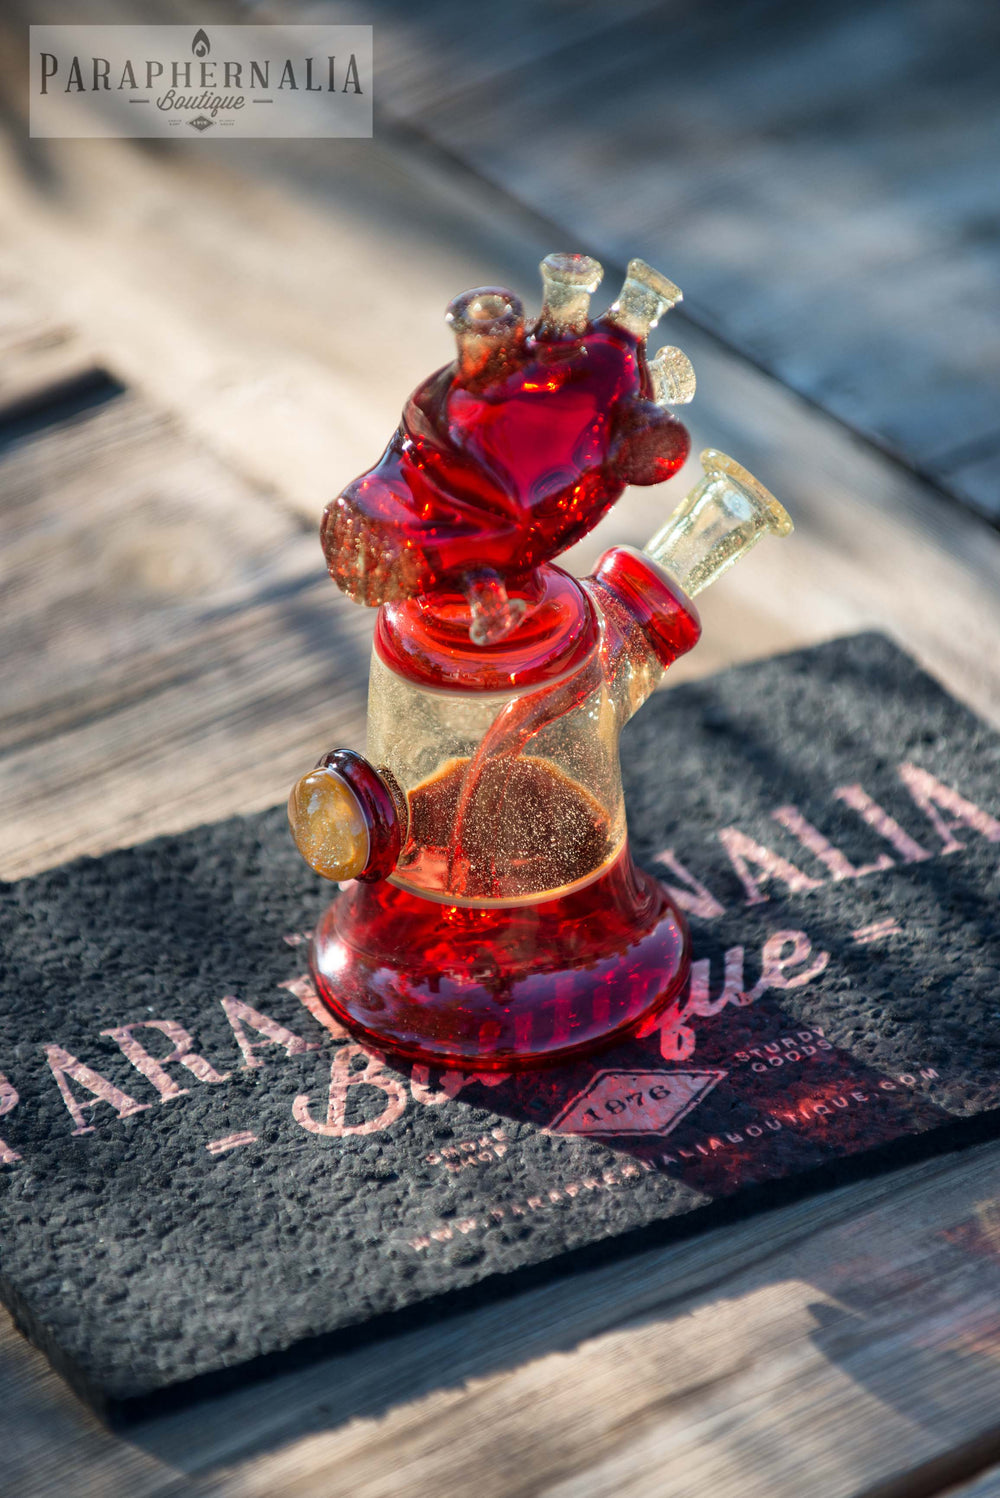 HicDogg Anunnaki Alien Astronaut Space Jammer Heady Rigs - Pomegranate, Caramel, and CFL Syzygy - Headies